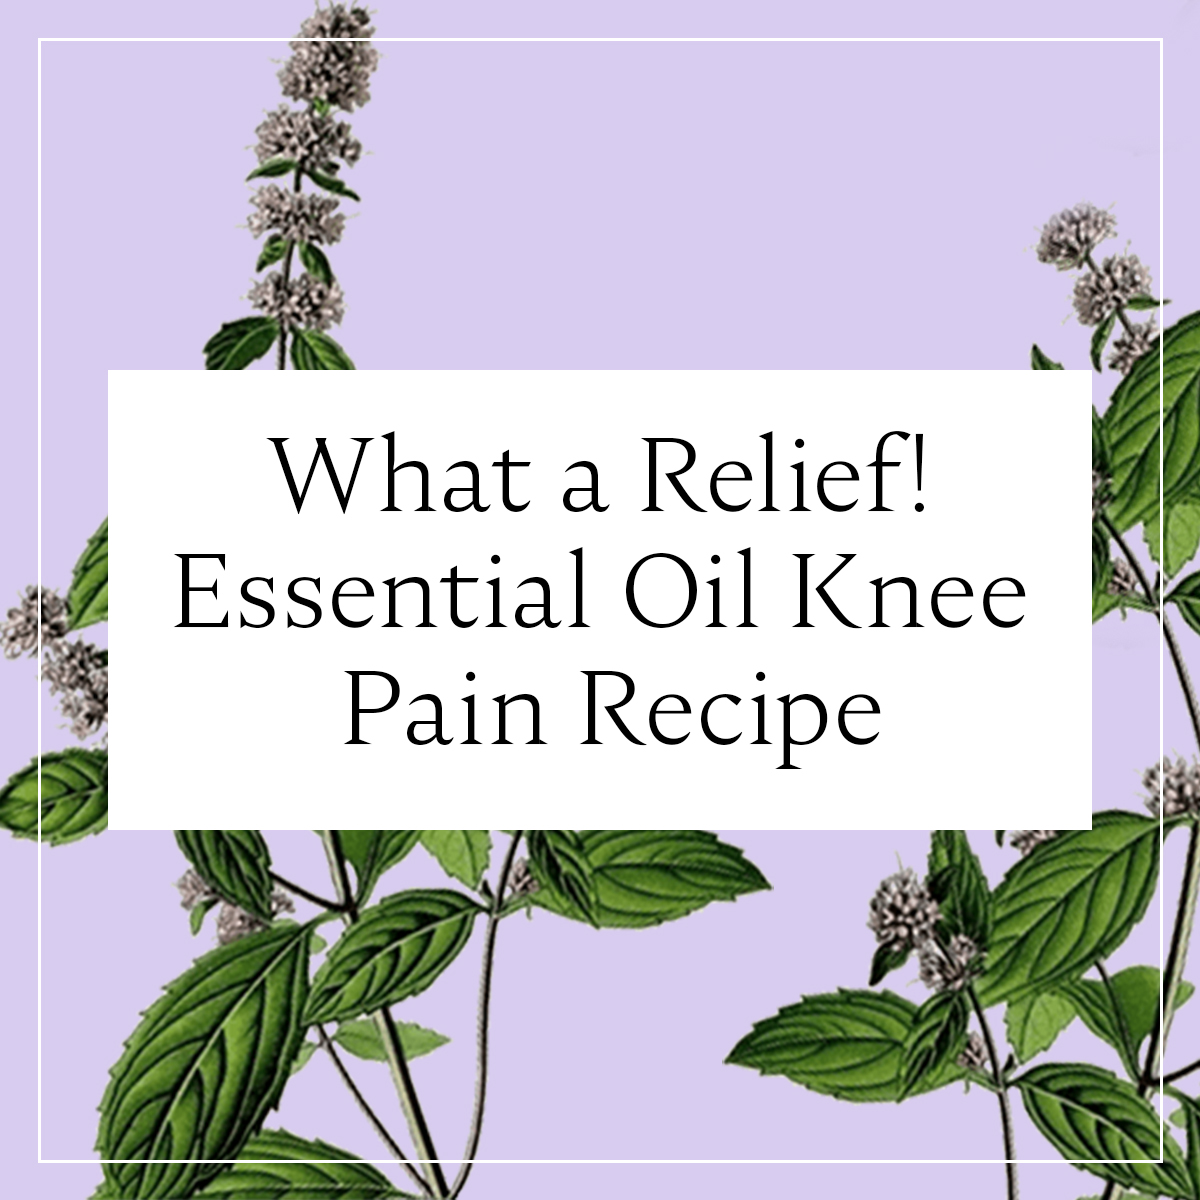 Photo of What a relief! A knee pain recipe with natural essential oils